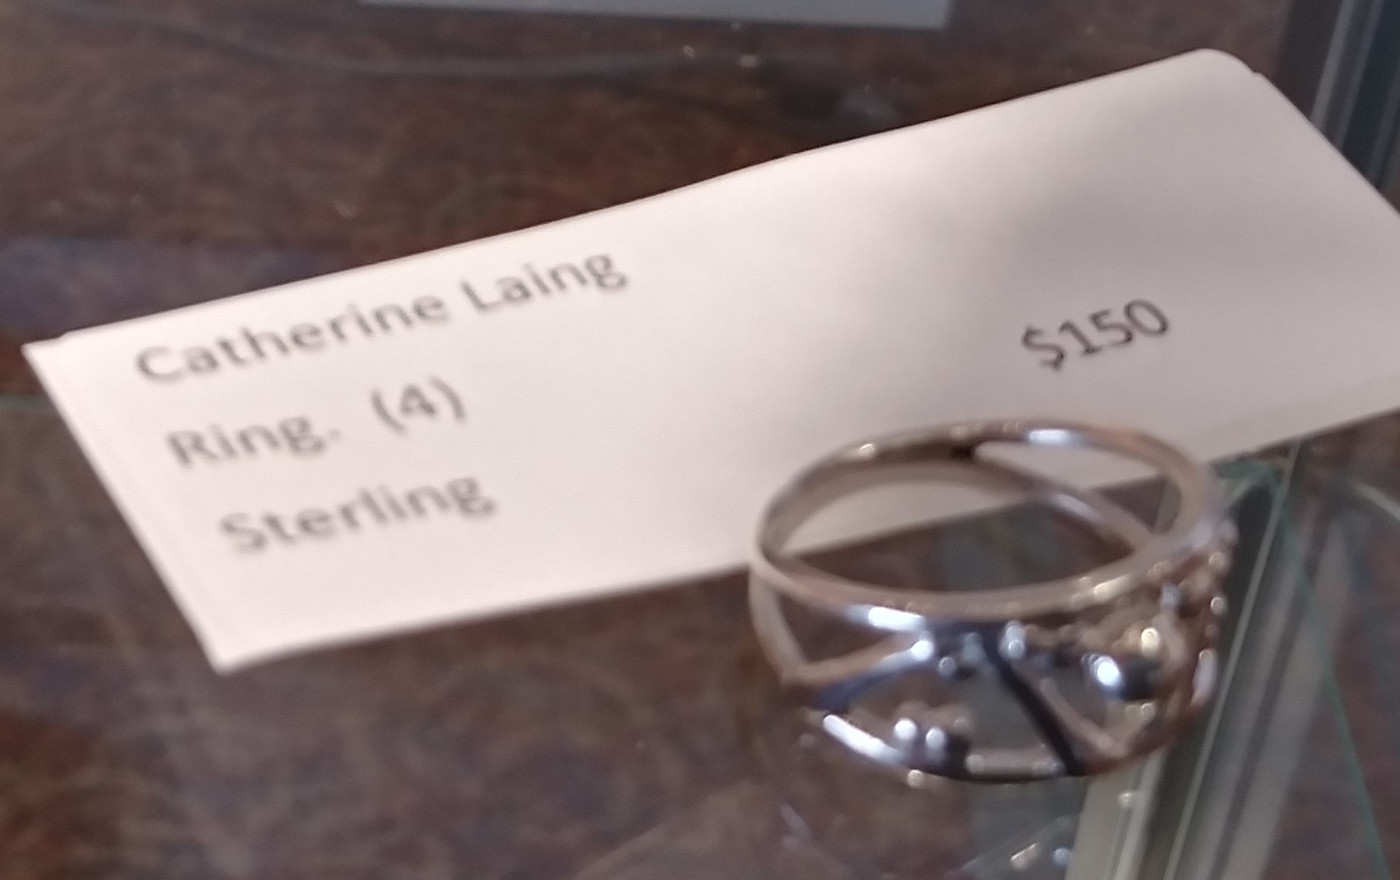 CatherineLaing_SterlingRing.jpg